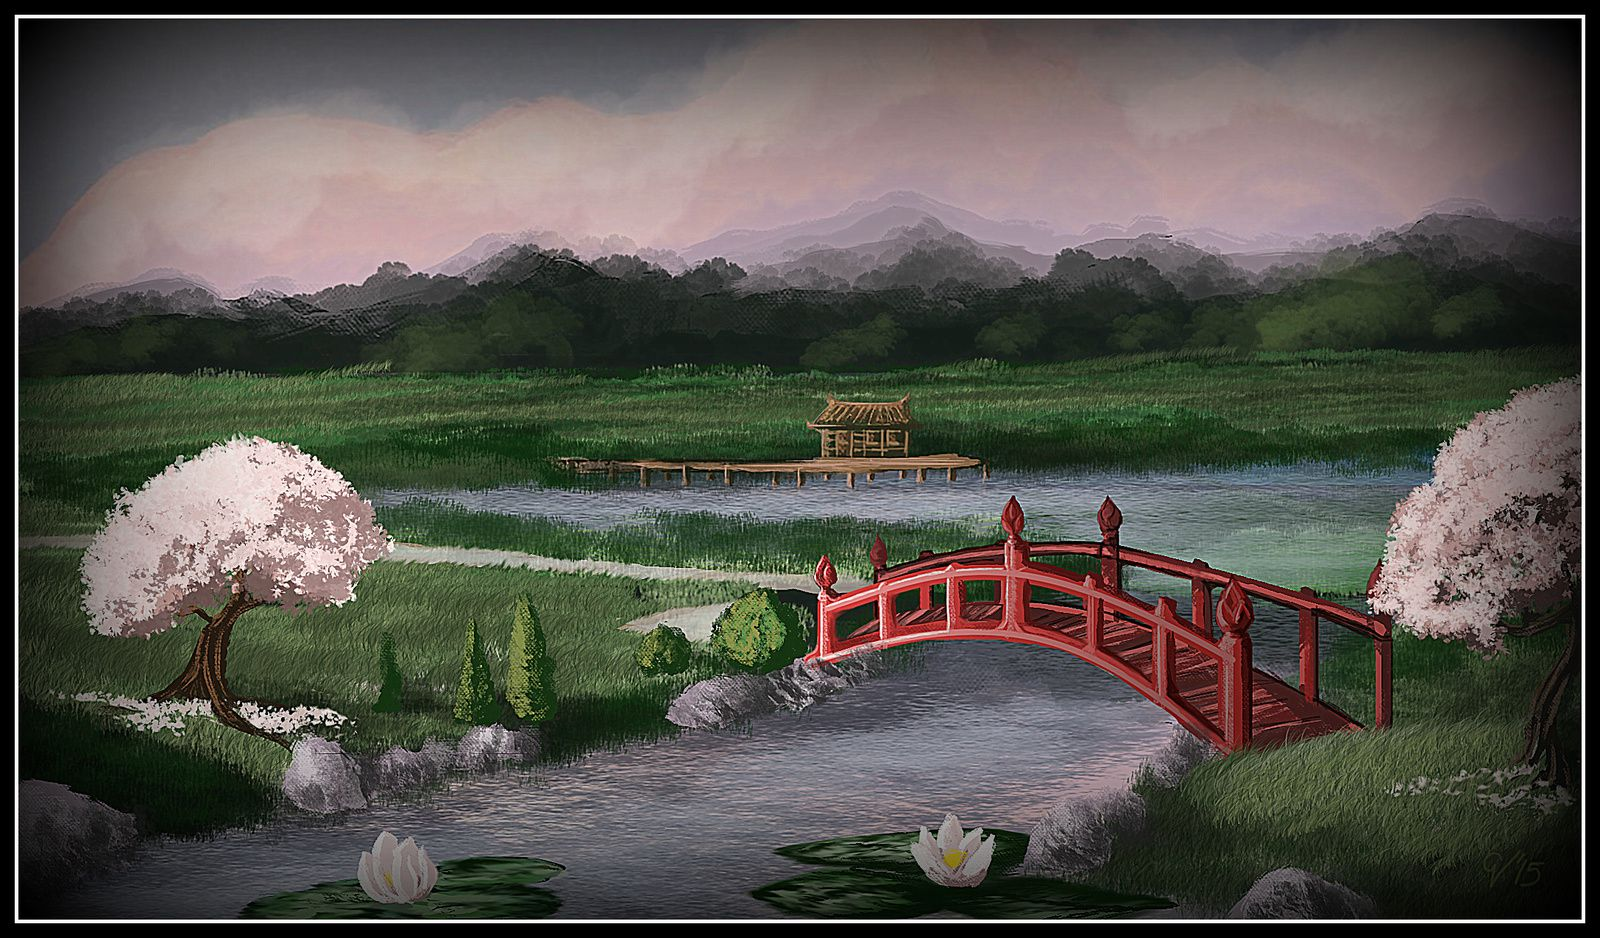 scenery images